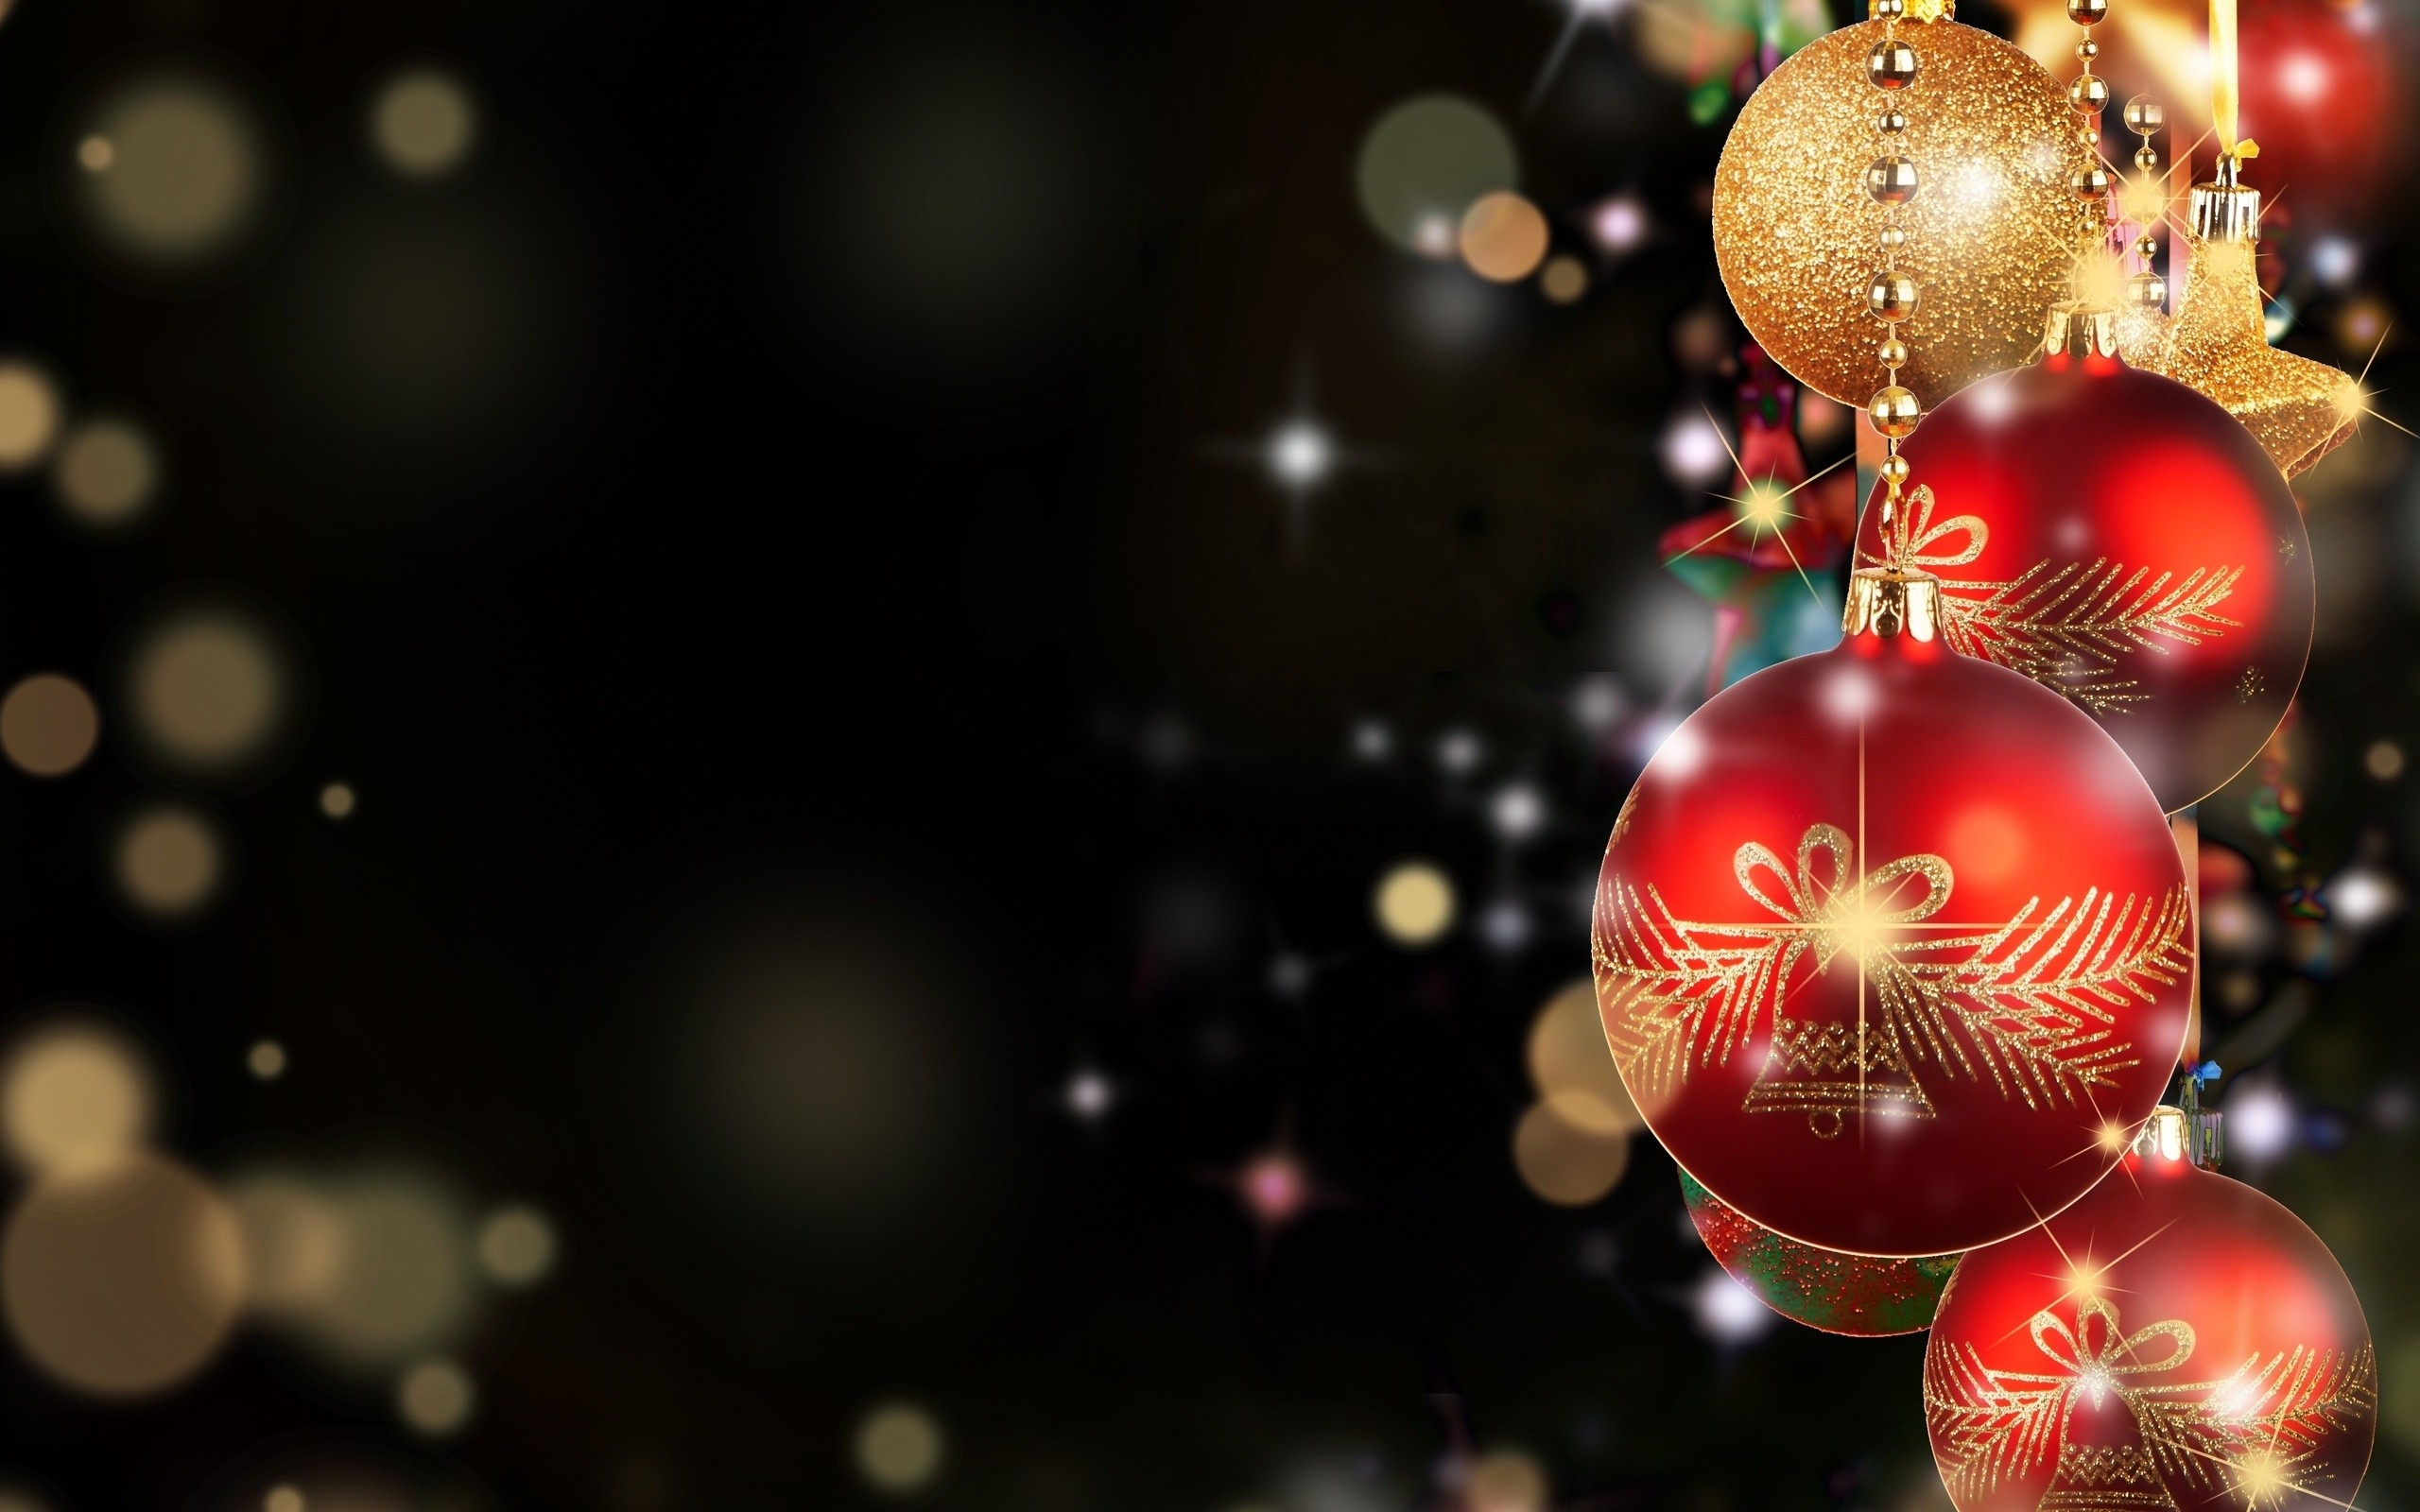 HD Christmas wallpaper ·① Download free cool full HD wallpapers for ...